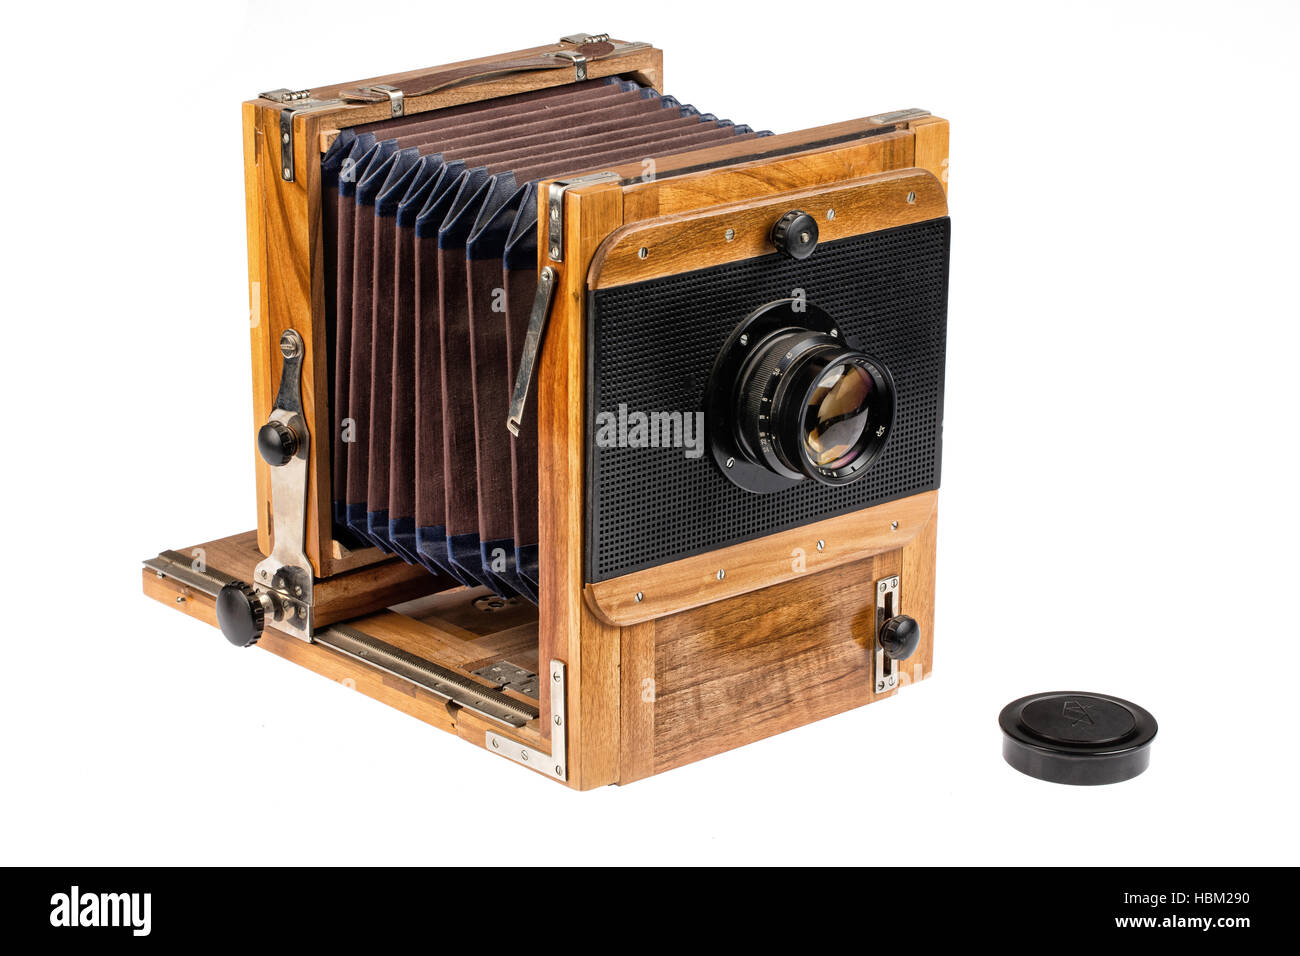 Old Wooden Photocamera - Stock Image